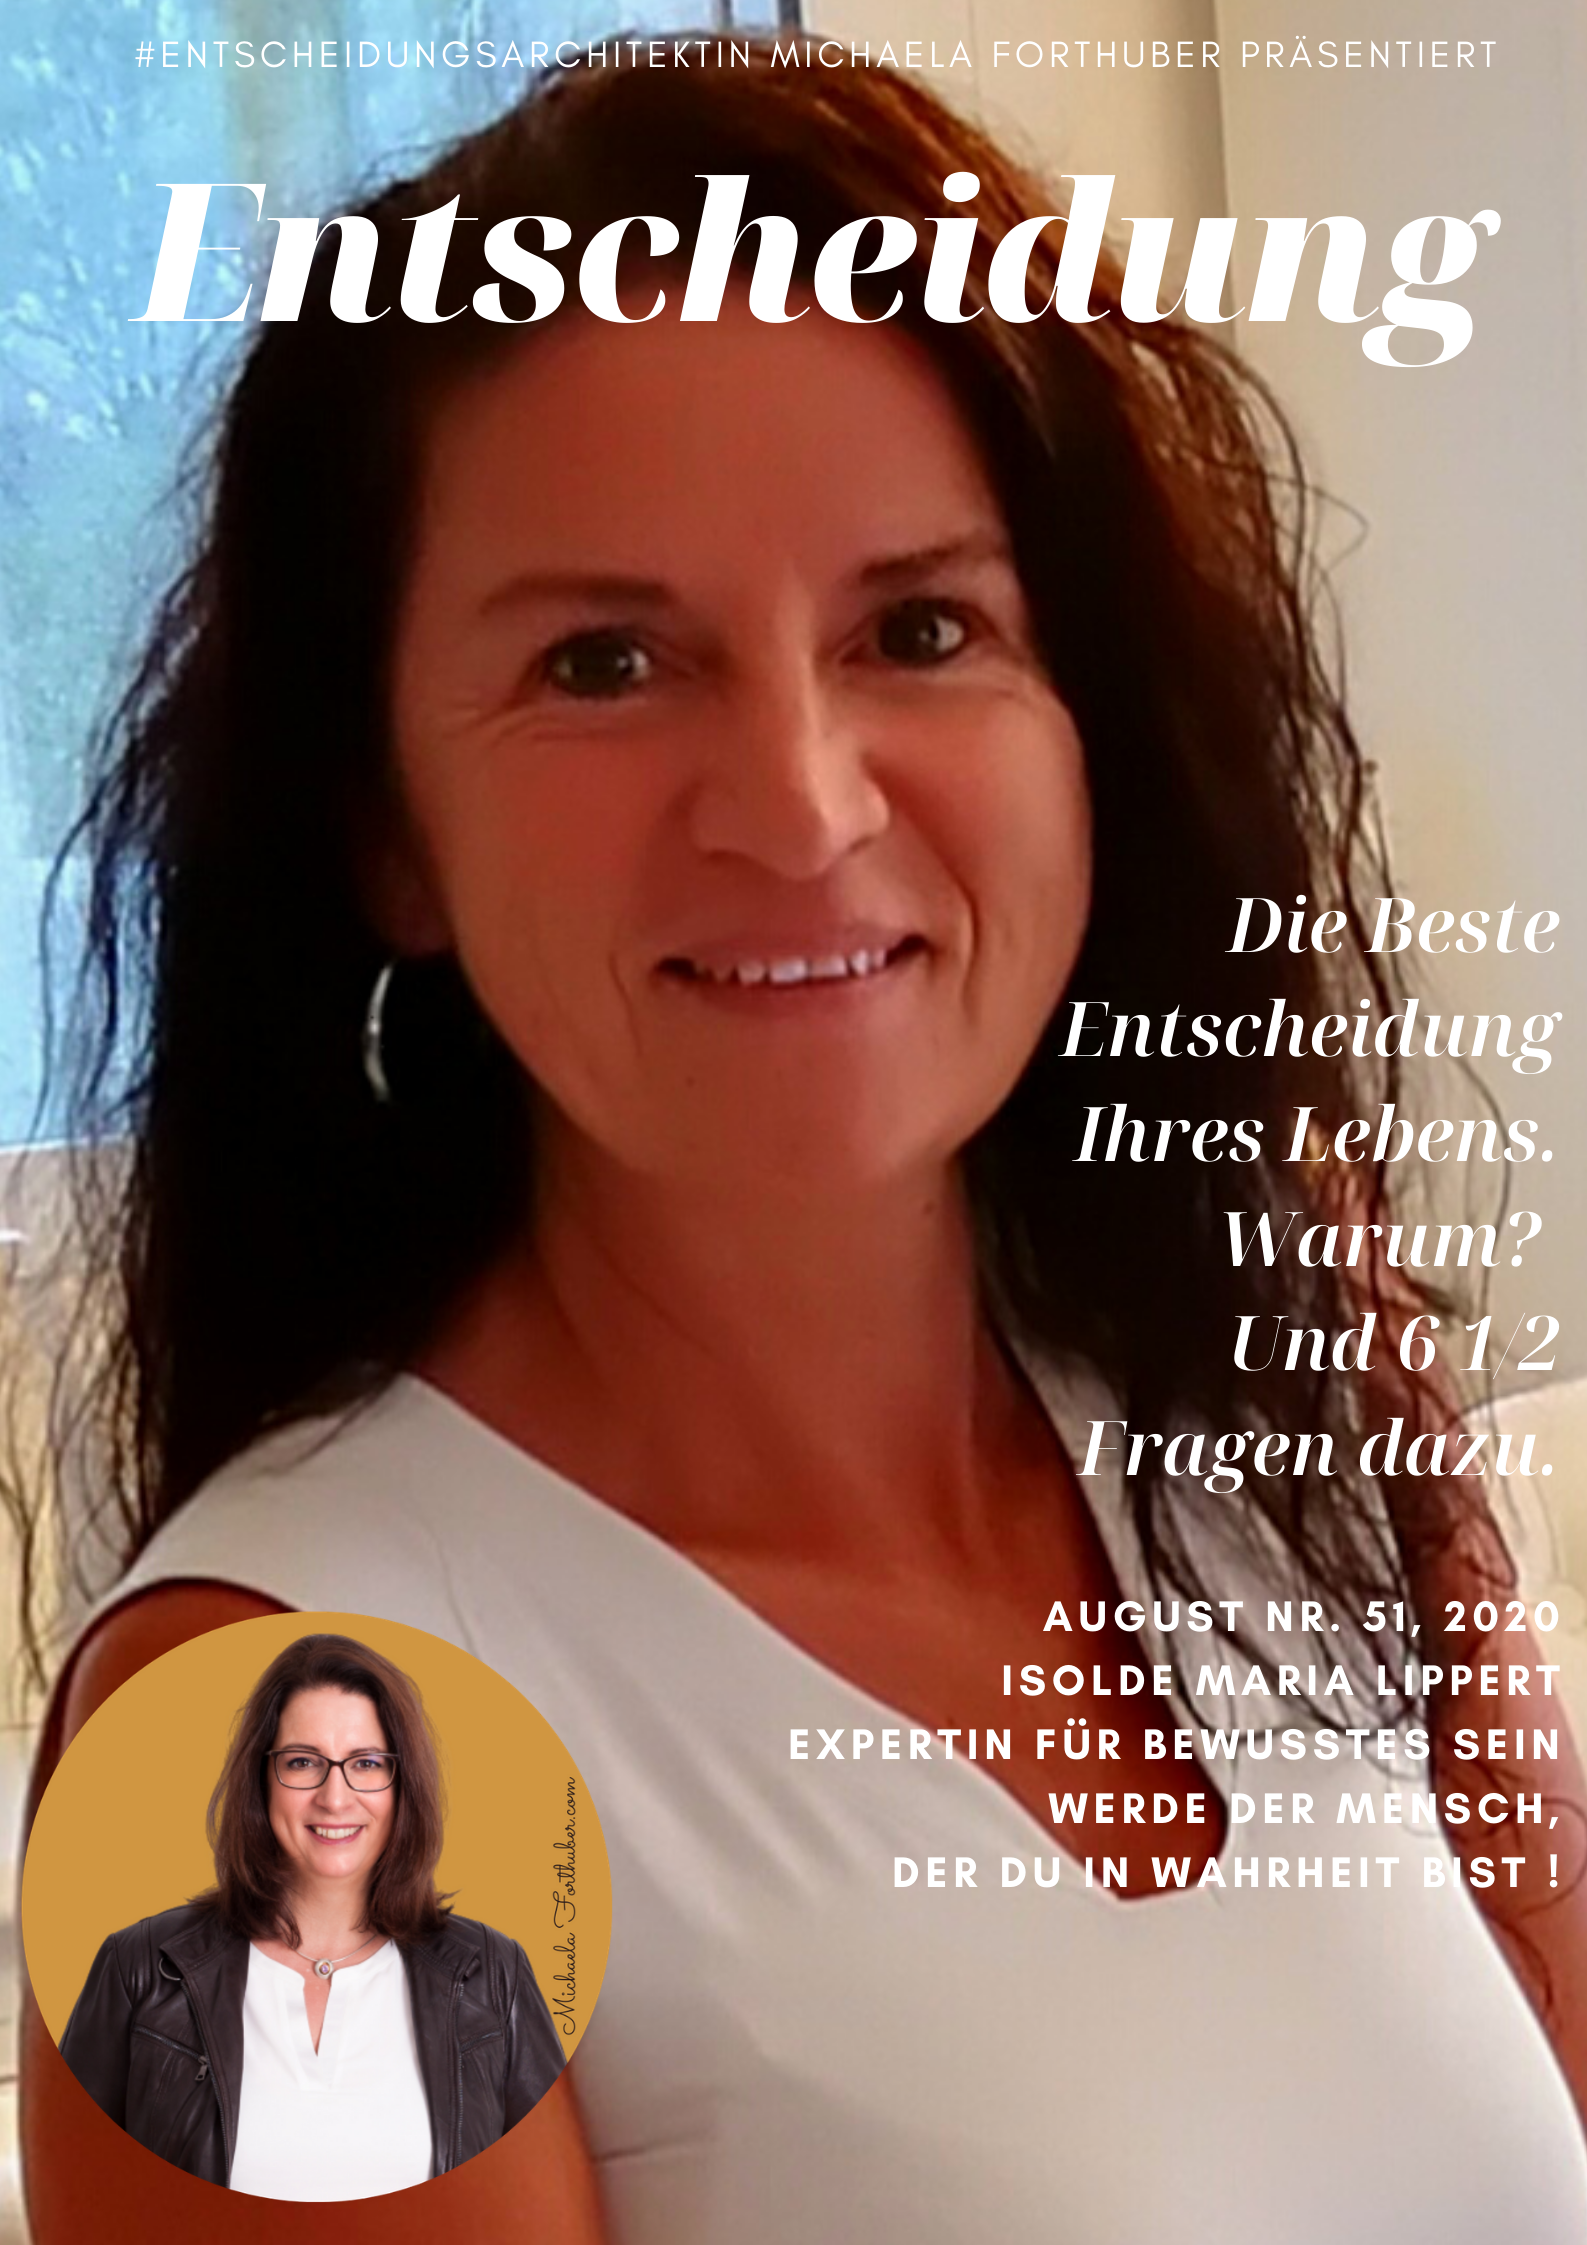 Blog Interview Entscheiden Cover Interview Michaela Forthuber #Entscheidungarchitektin mit Isolde Maria Lippert